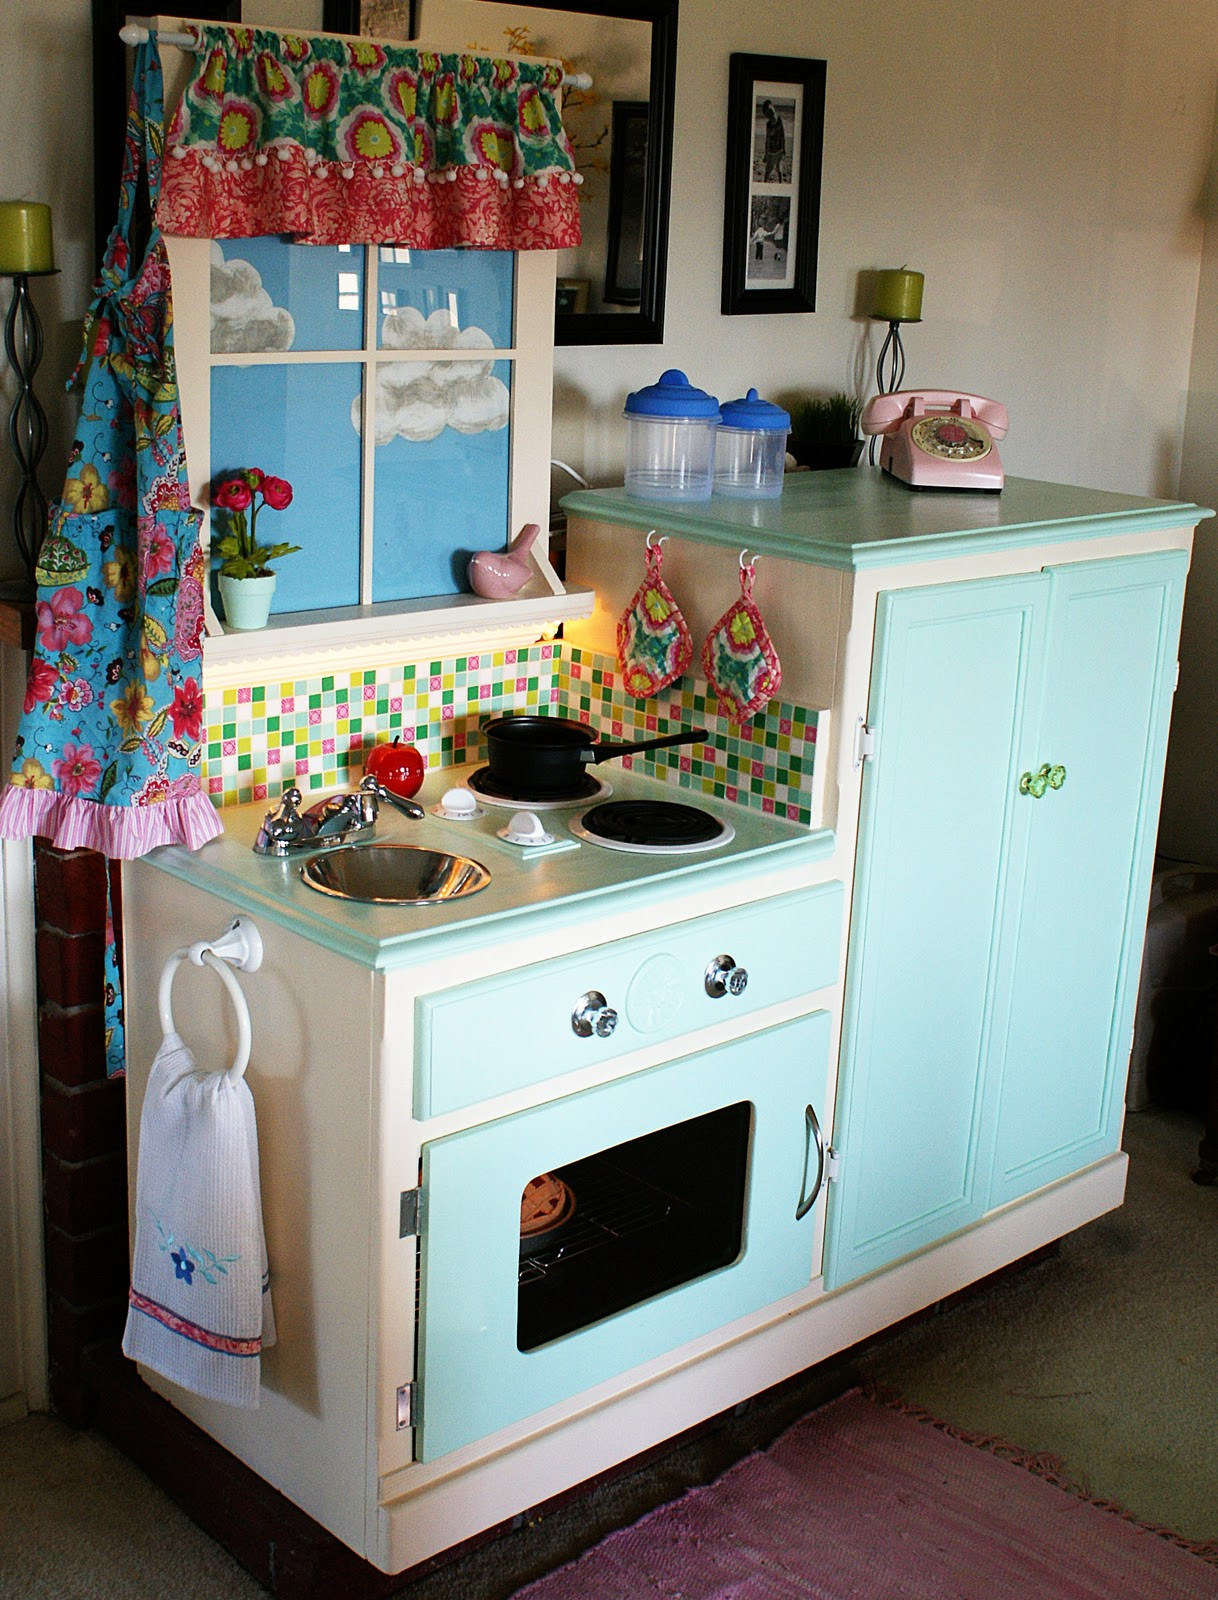 Best ideas about DIY Kids Kitchens . Save or Pin Easy Peasy Pie Play Kitchen Now.